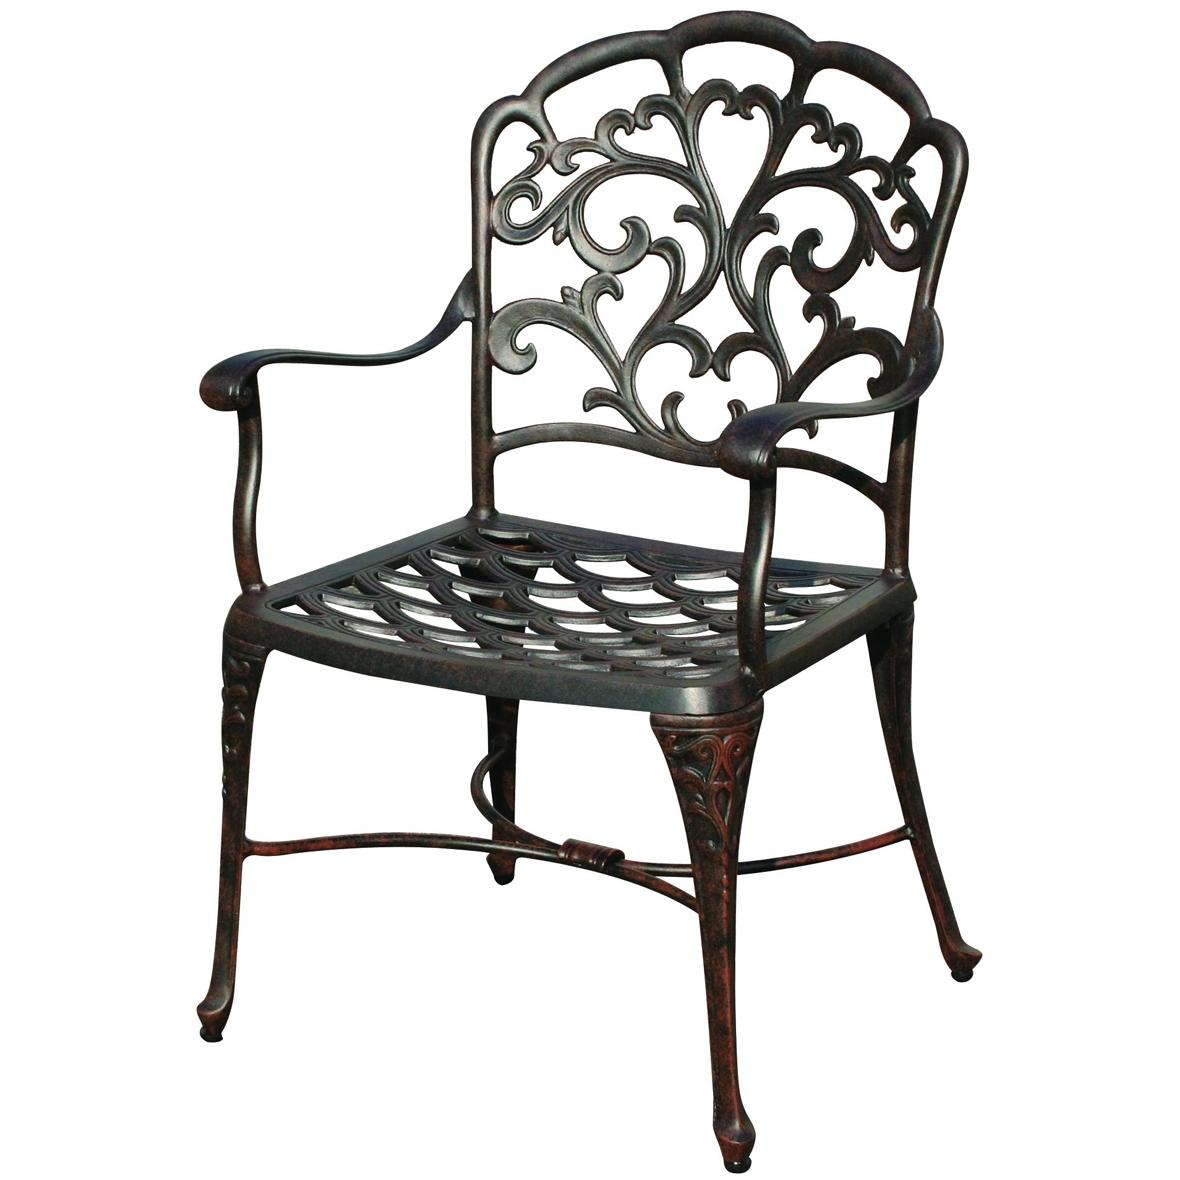 Darlee Catalina Cast Aluminum Outdoor Patio Dining Chair With Cushion - Antique Bronze